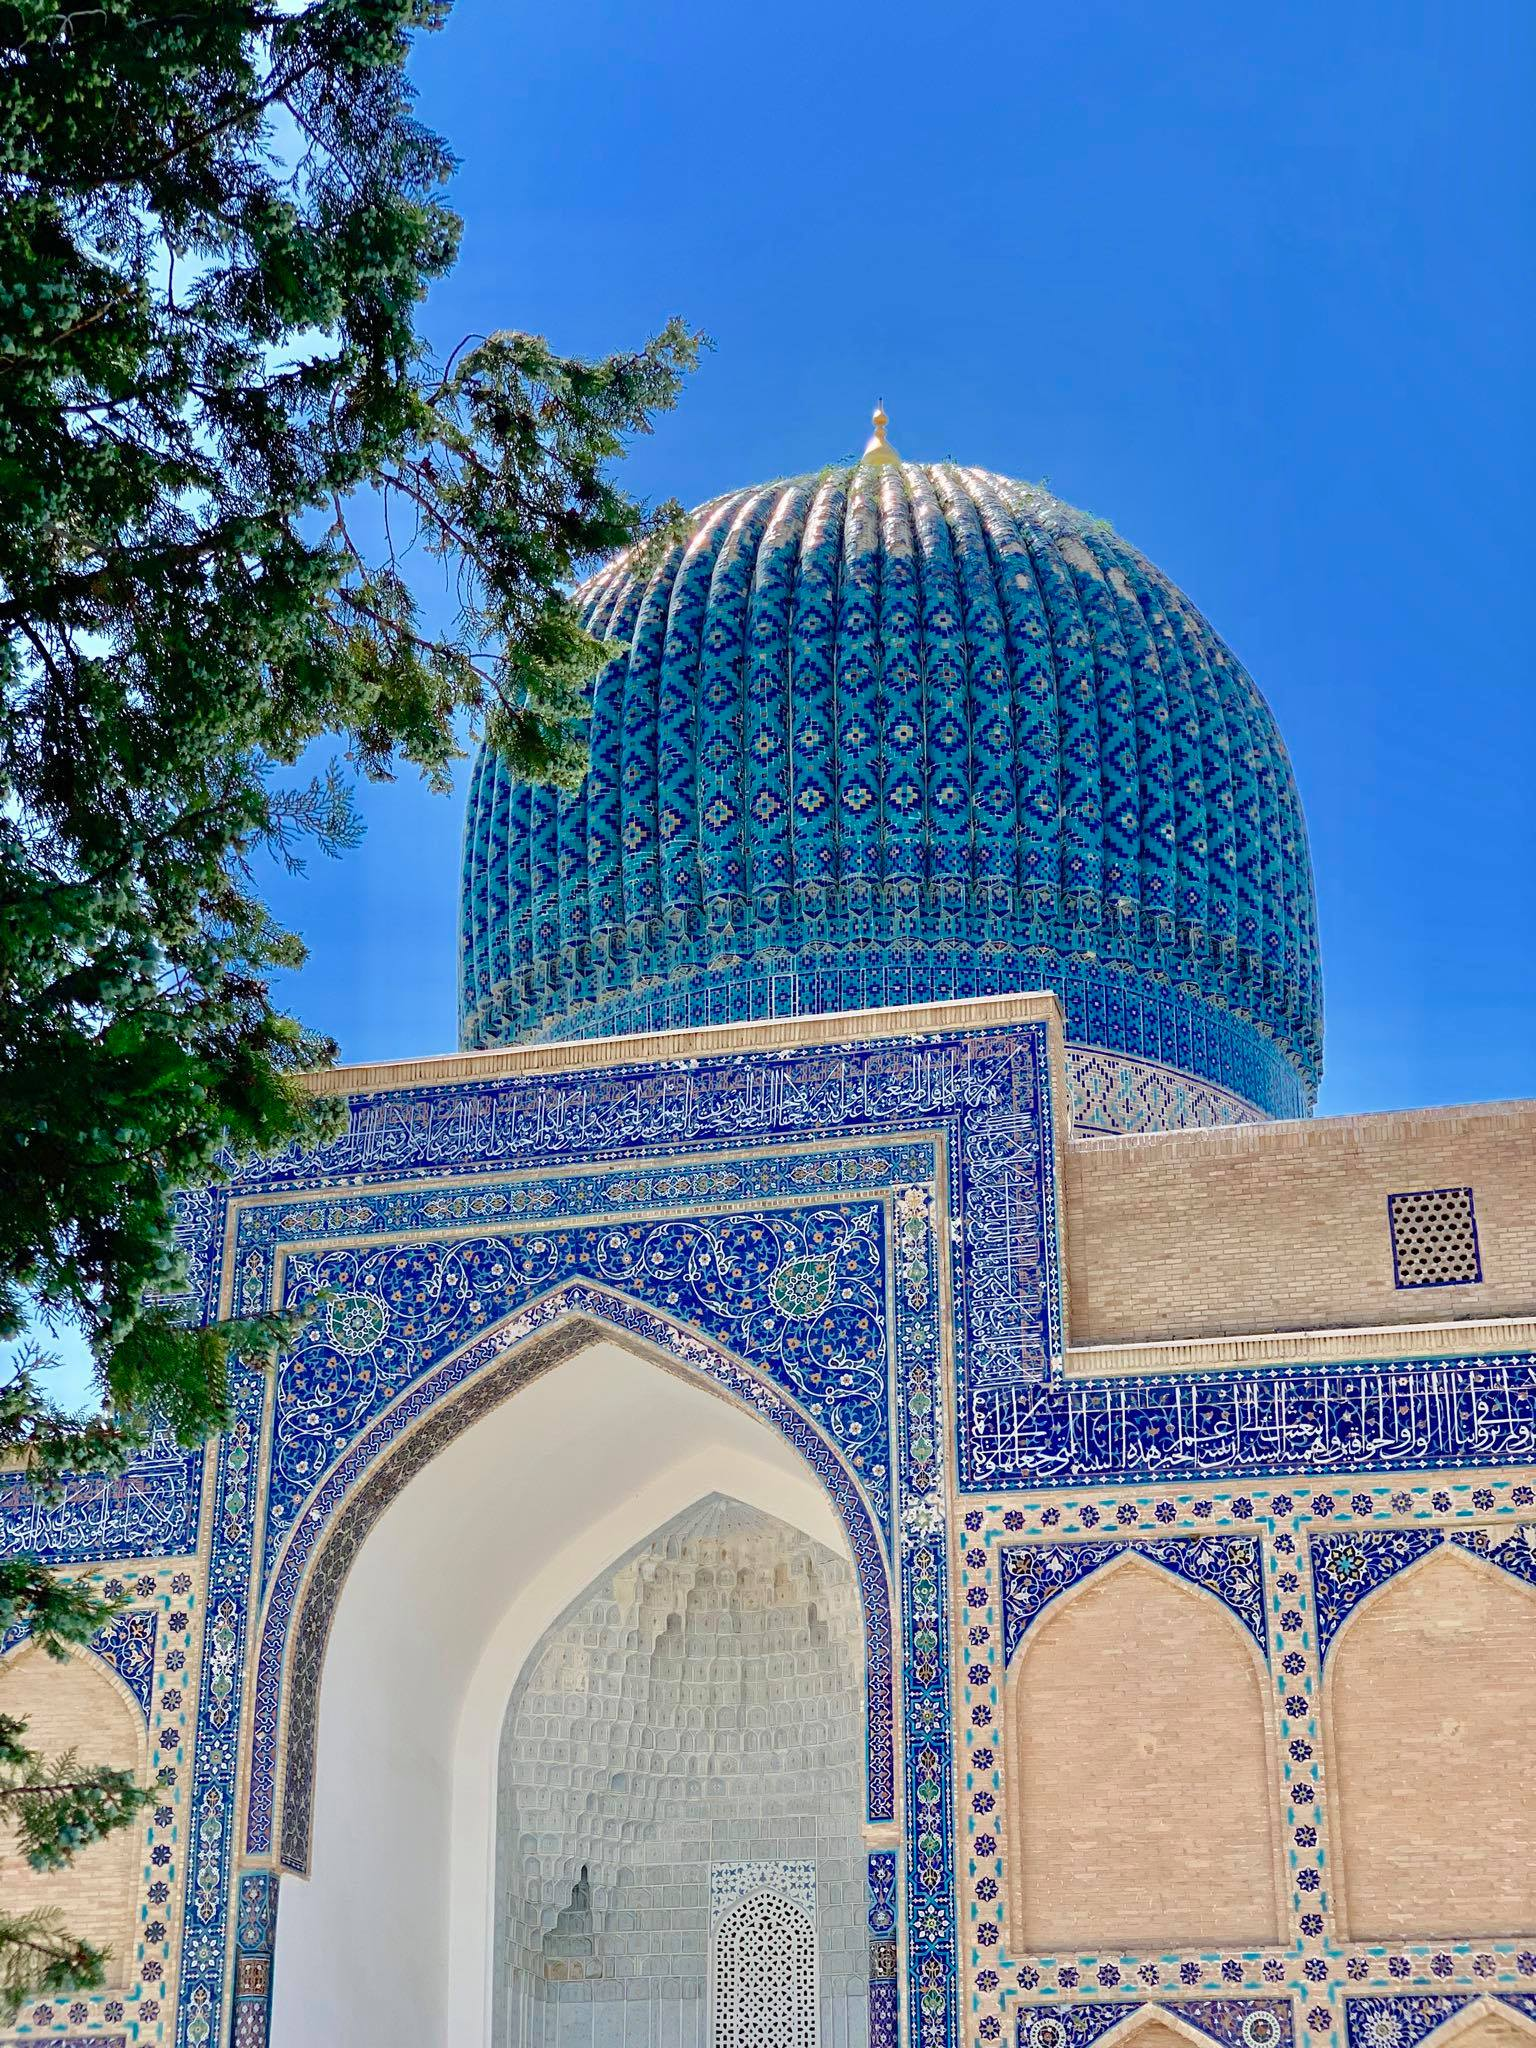 Kach Solo Travels in 2019 Hello from Samarqand  Samarkand in the southeastern part of Uzbekistan6.jpg